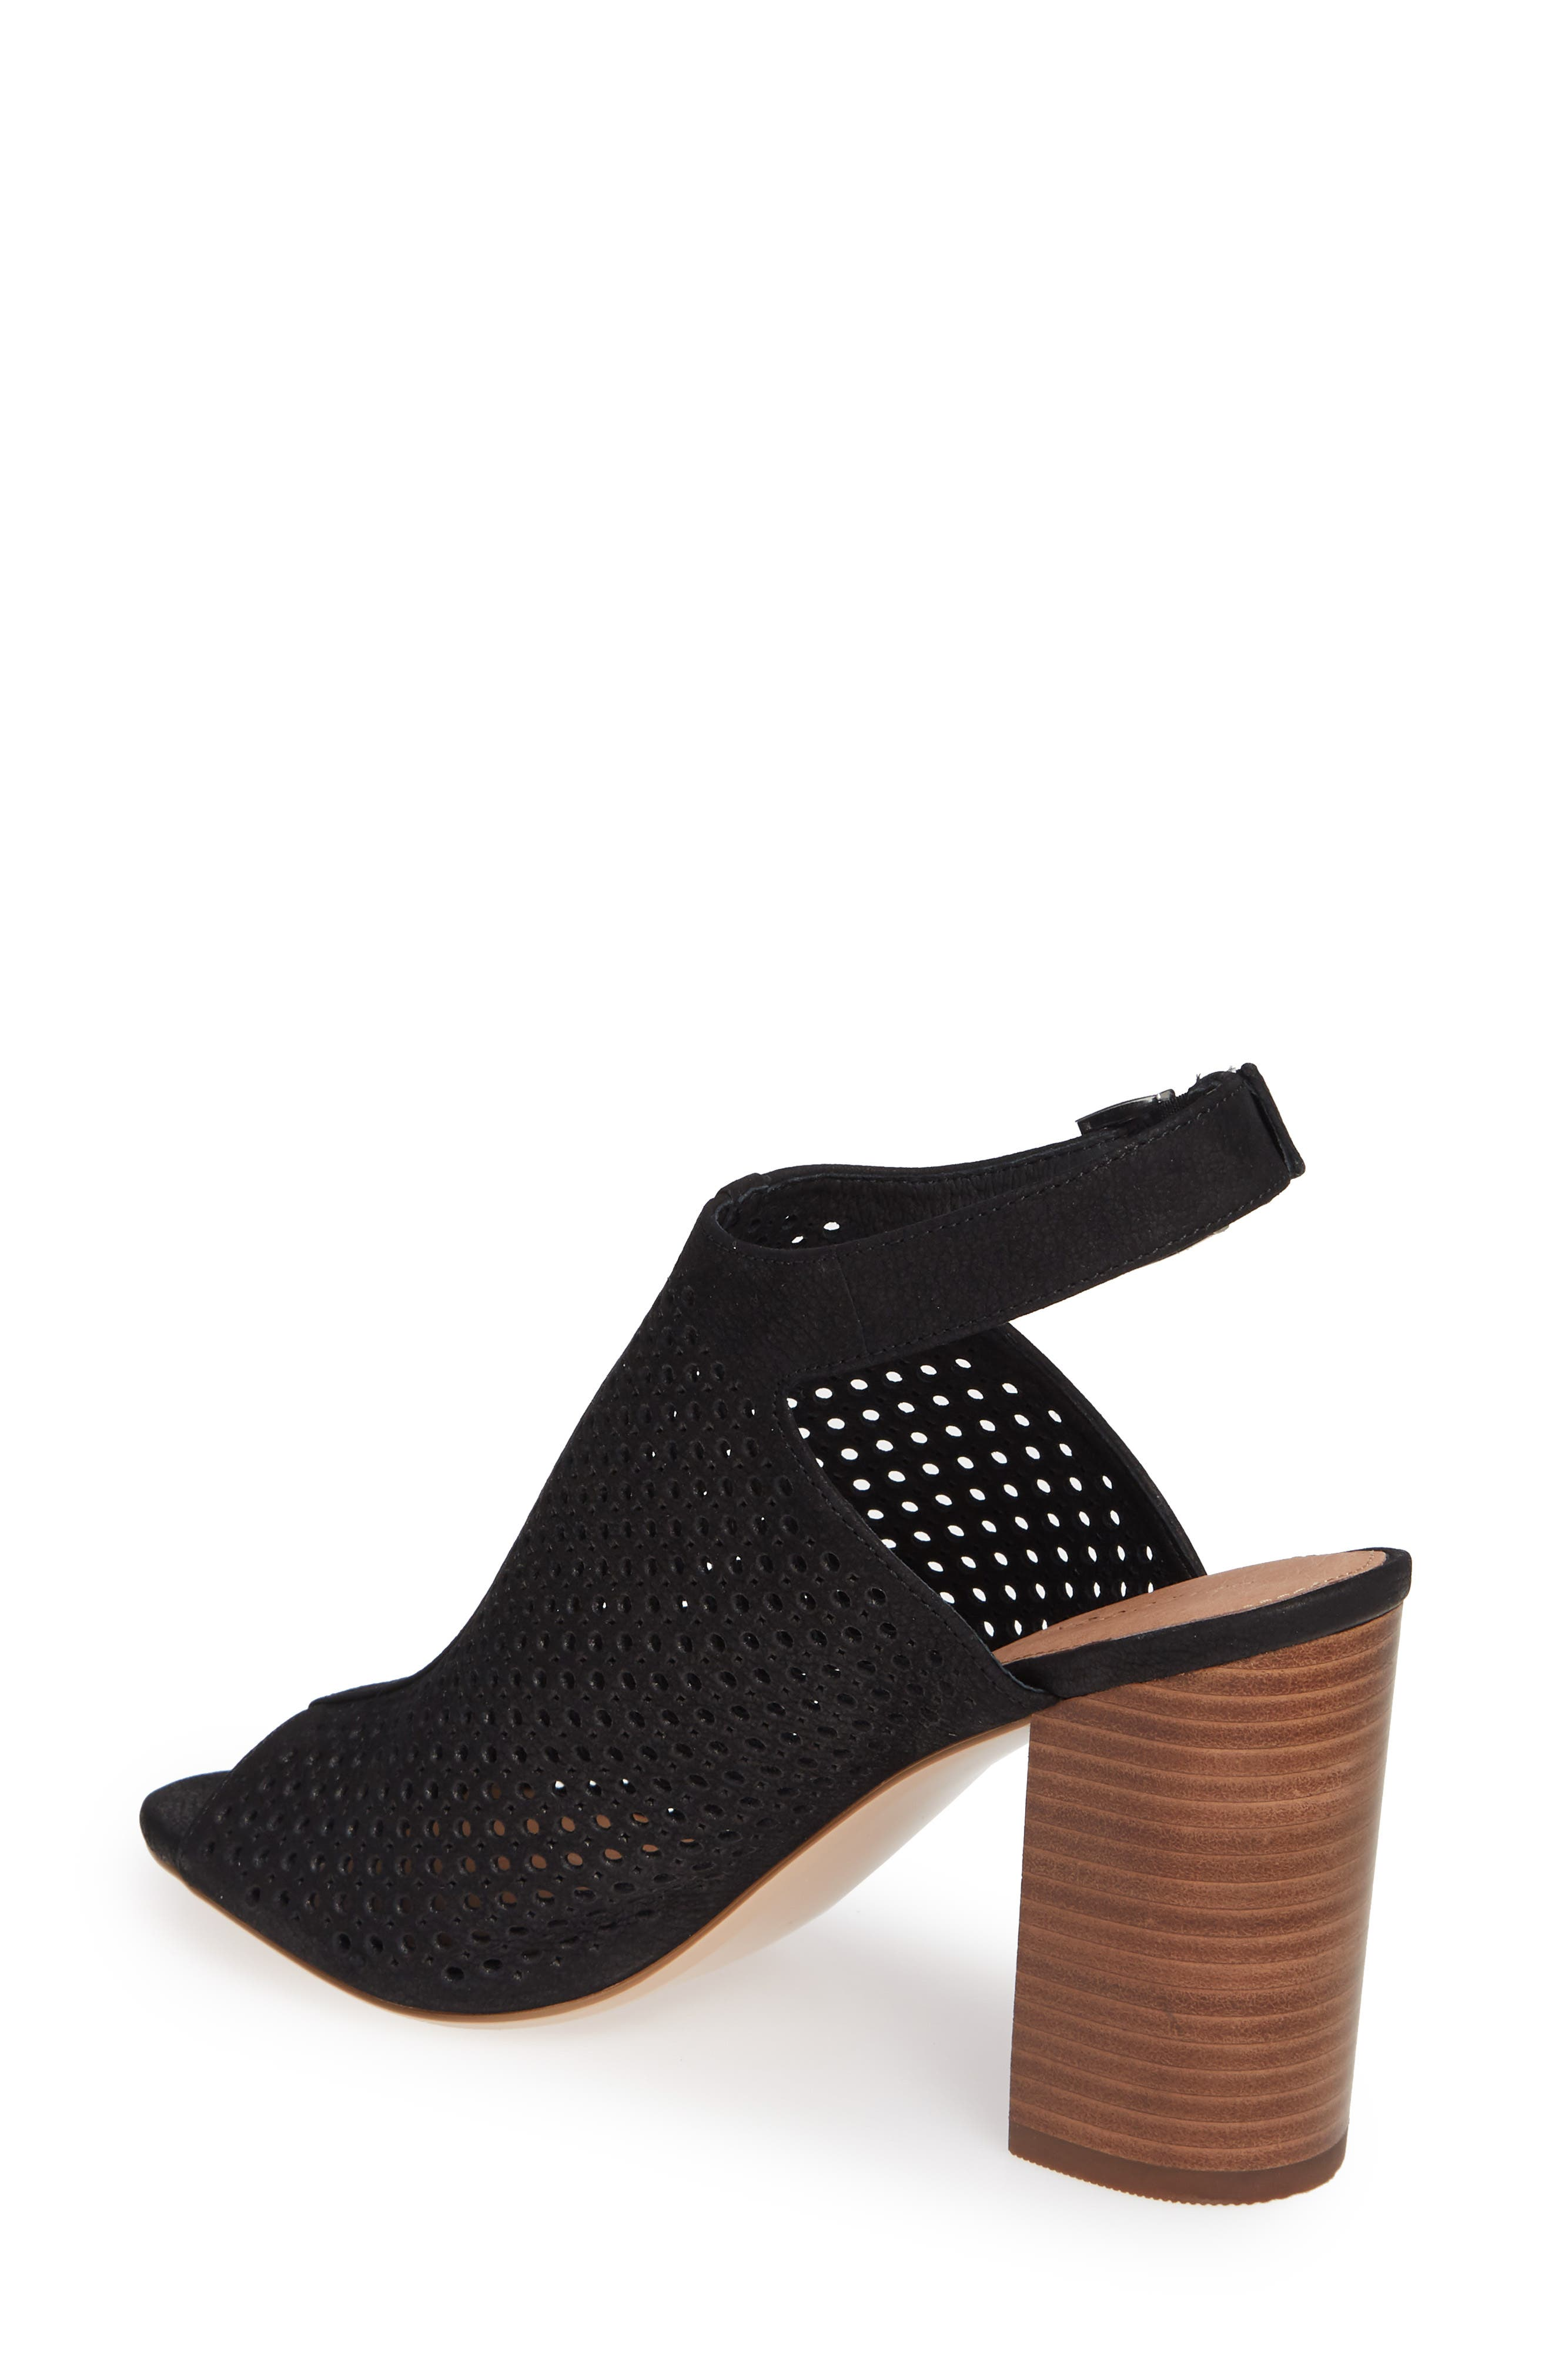 HALOGEN<SUP>®</SUP>, Demi Perforated Shield Sandal, Alternate thumbnail 2, color, BLACK OILED NUBUCK